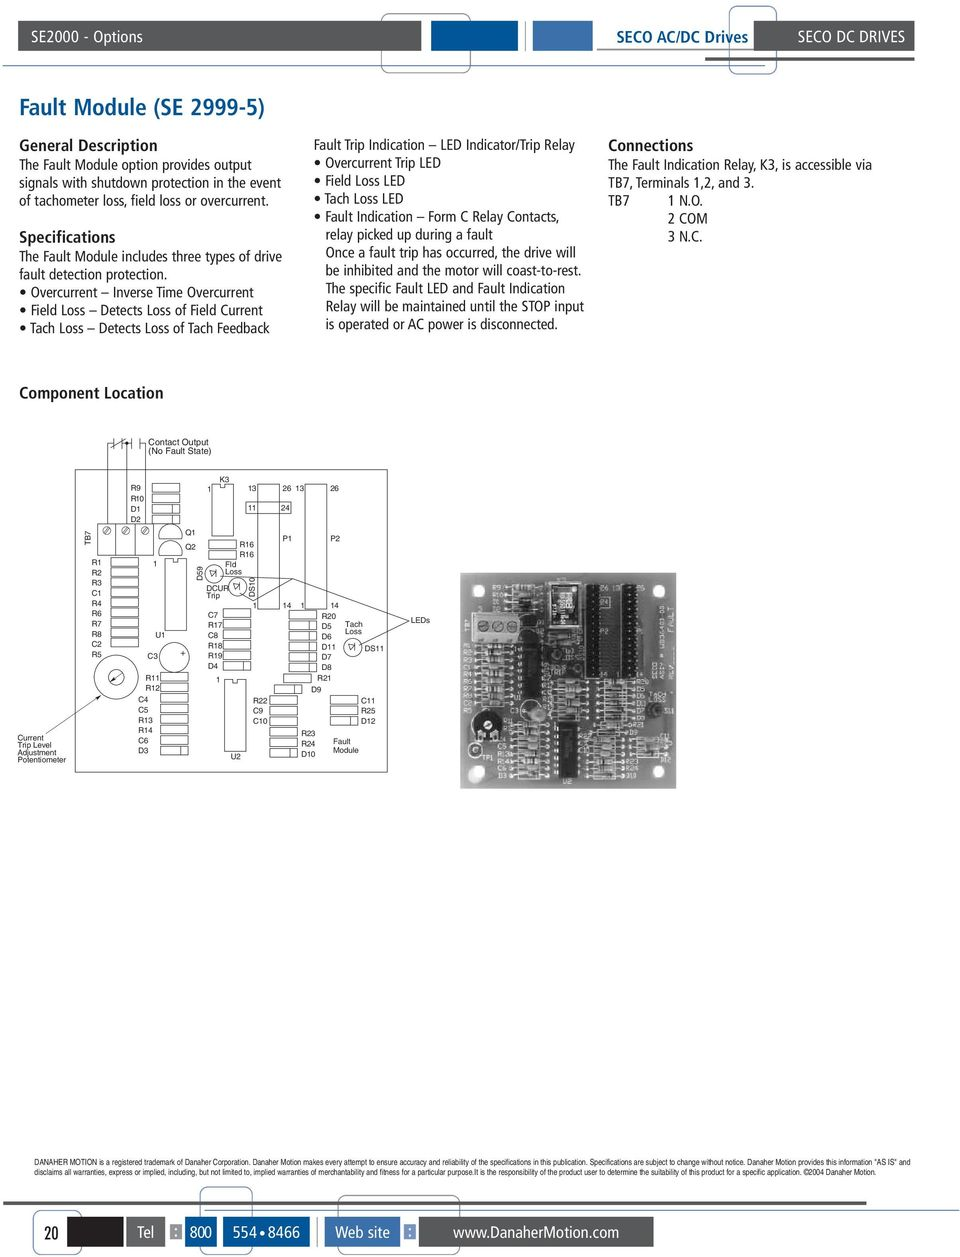 hight resolution of august seco dc drives table of contents pdf kbic 120 schematic kbic 120 wiring diagram